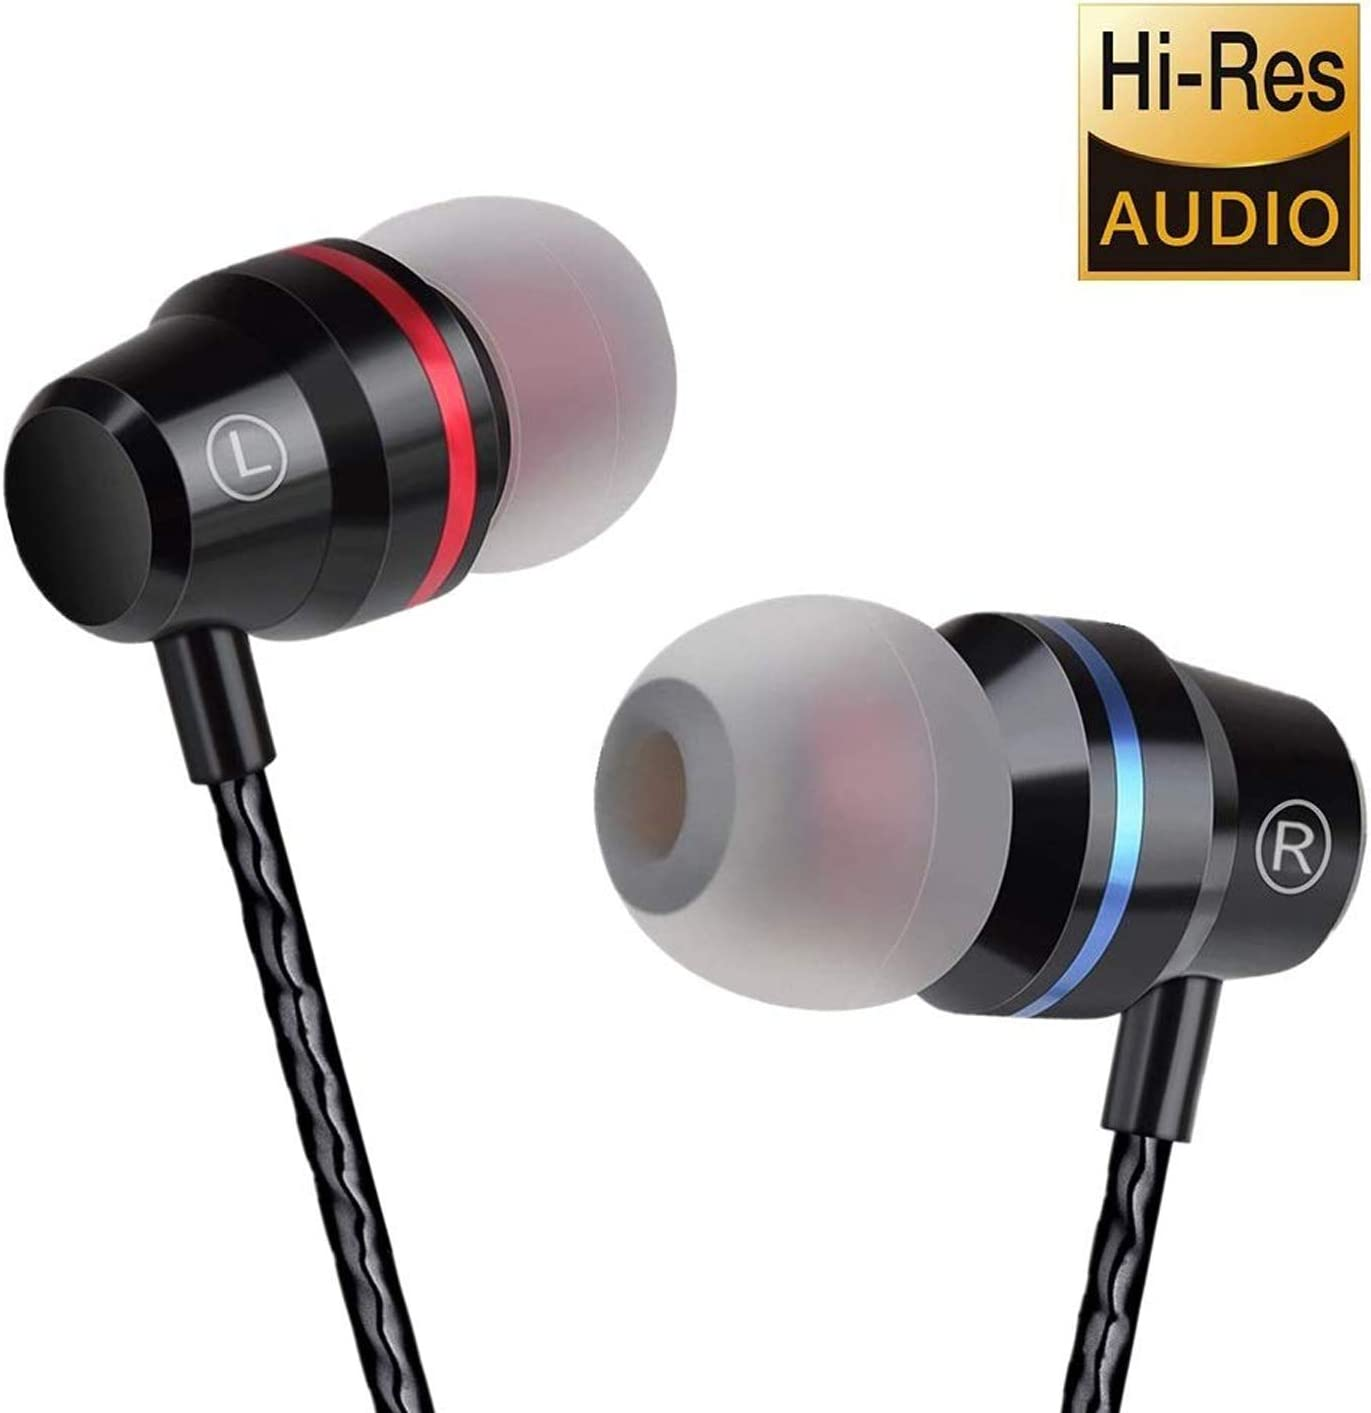 Wired Headphones with Built-in Microphone, 3.5mm Wired Earphones with Mic, Sweatproof Earbuds for Workout Sports Jogging